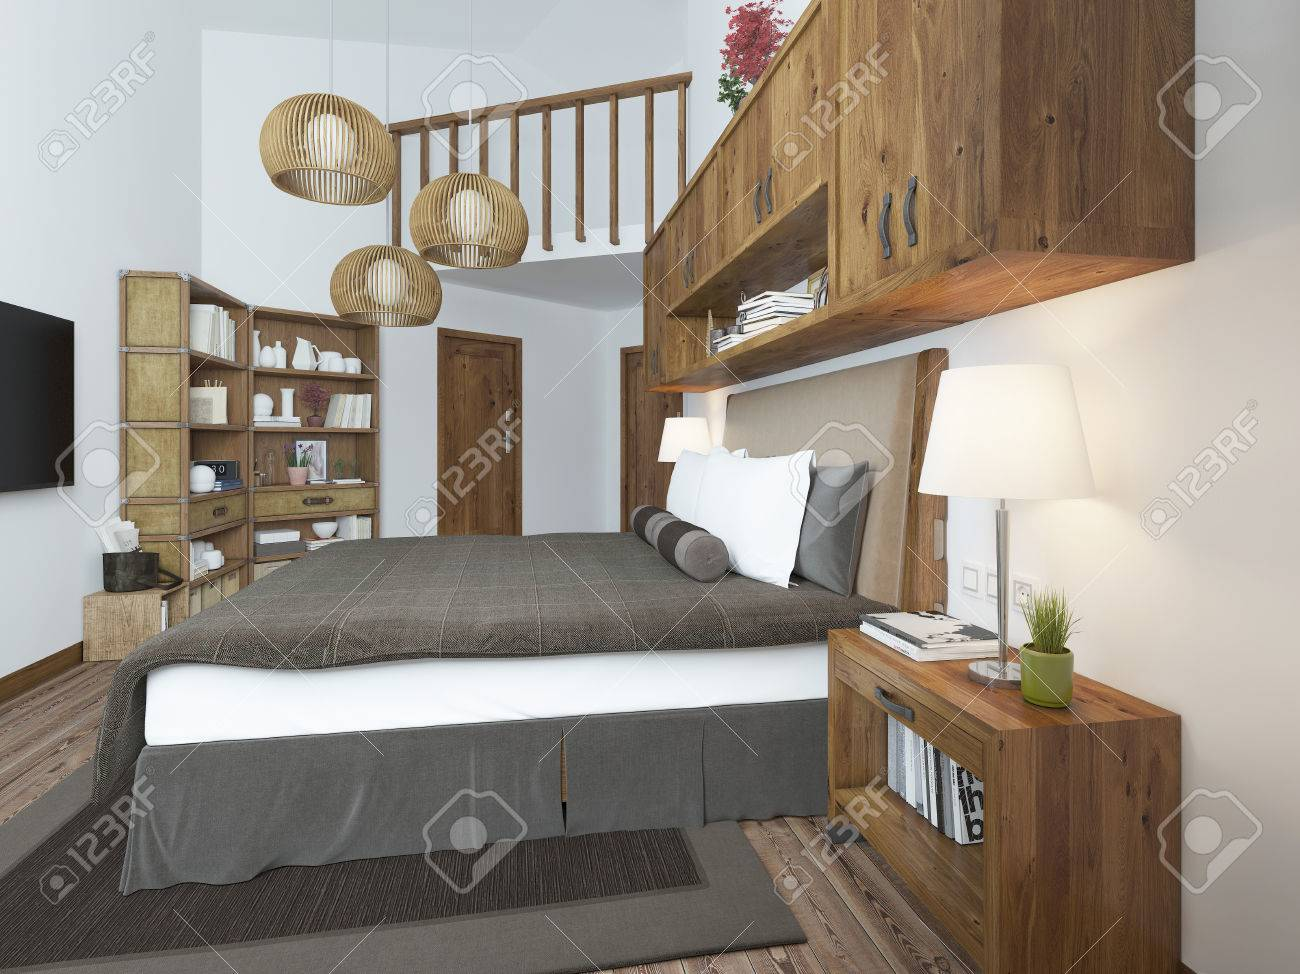 Large Bright Bedroom In The Loft Above The Bed Hang Shelves Stock Photo Picture And Royalty Free Image Image 60563988